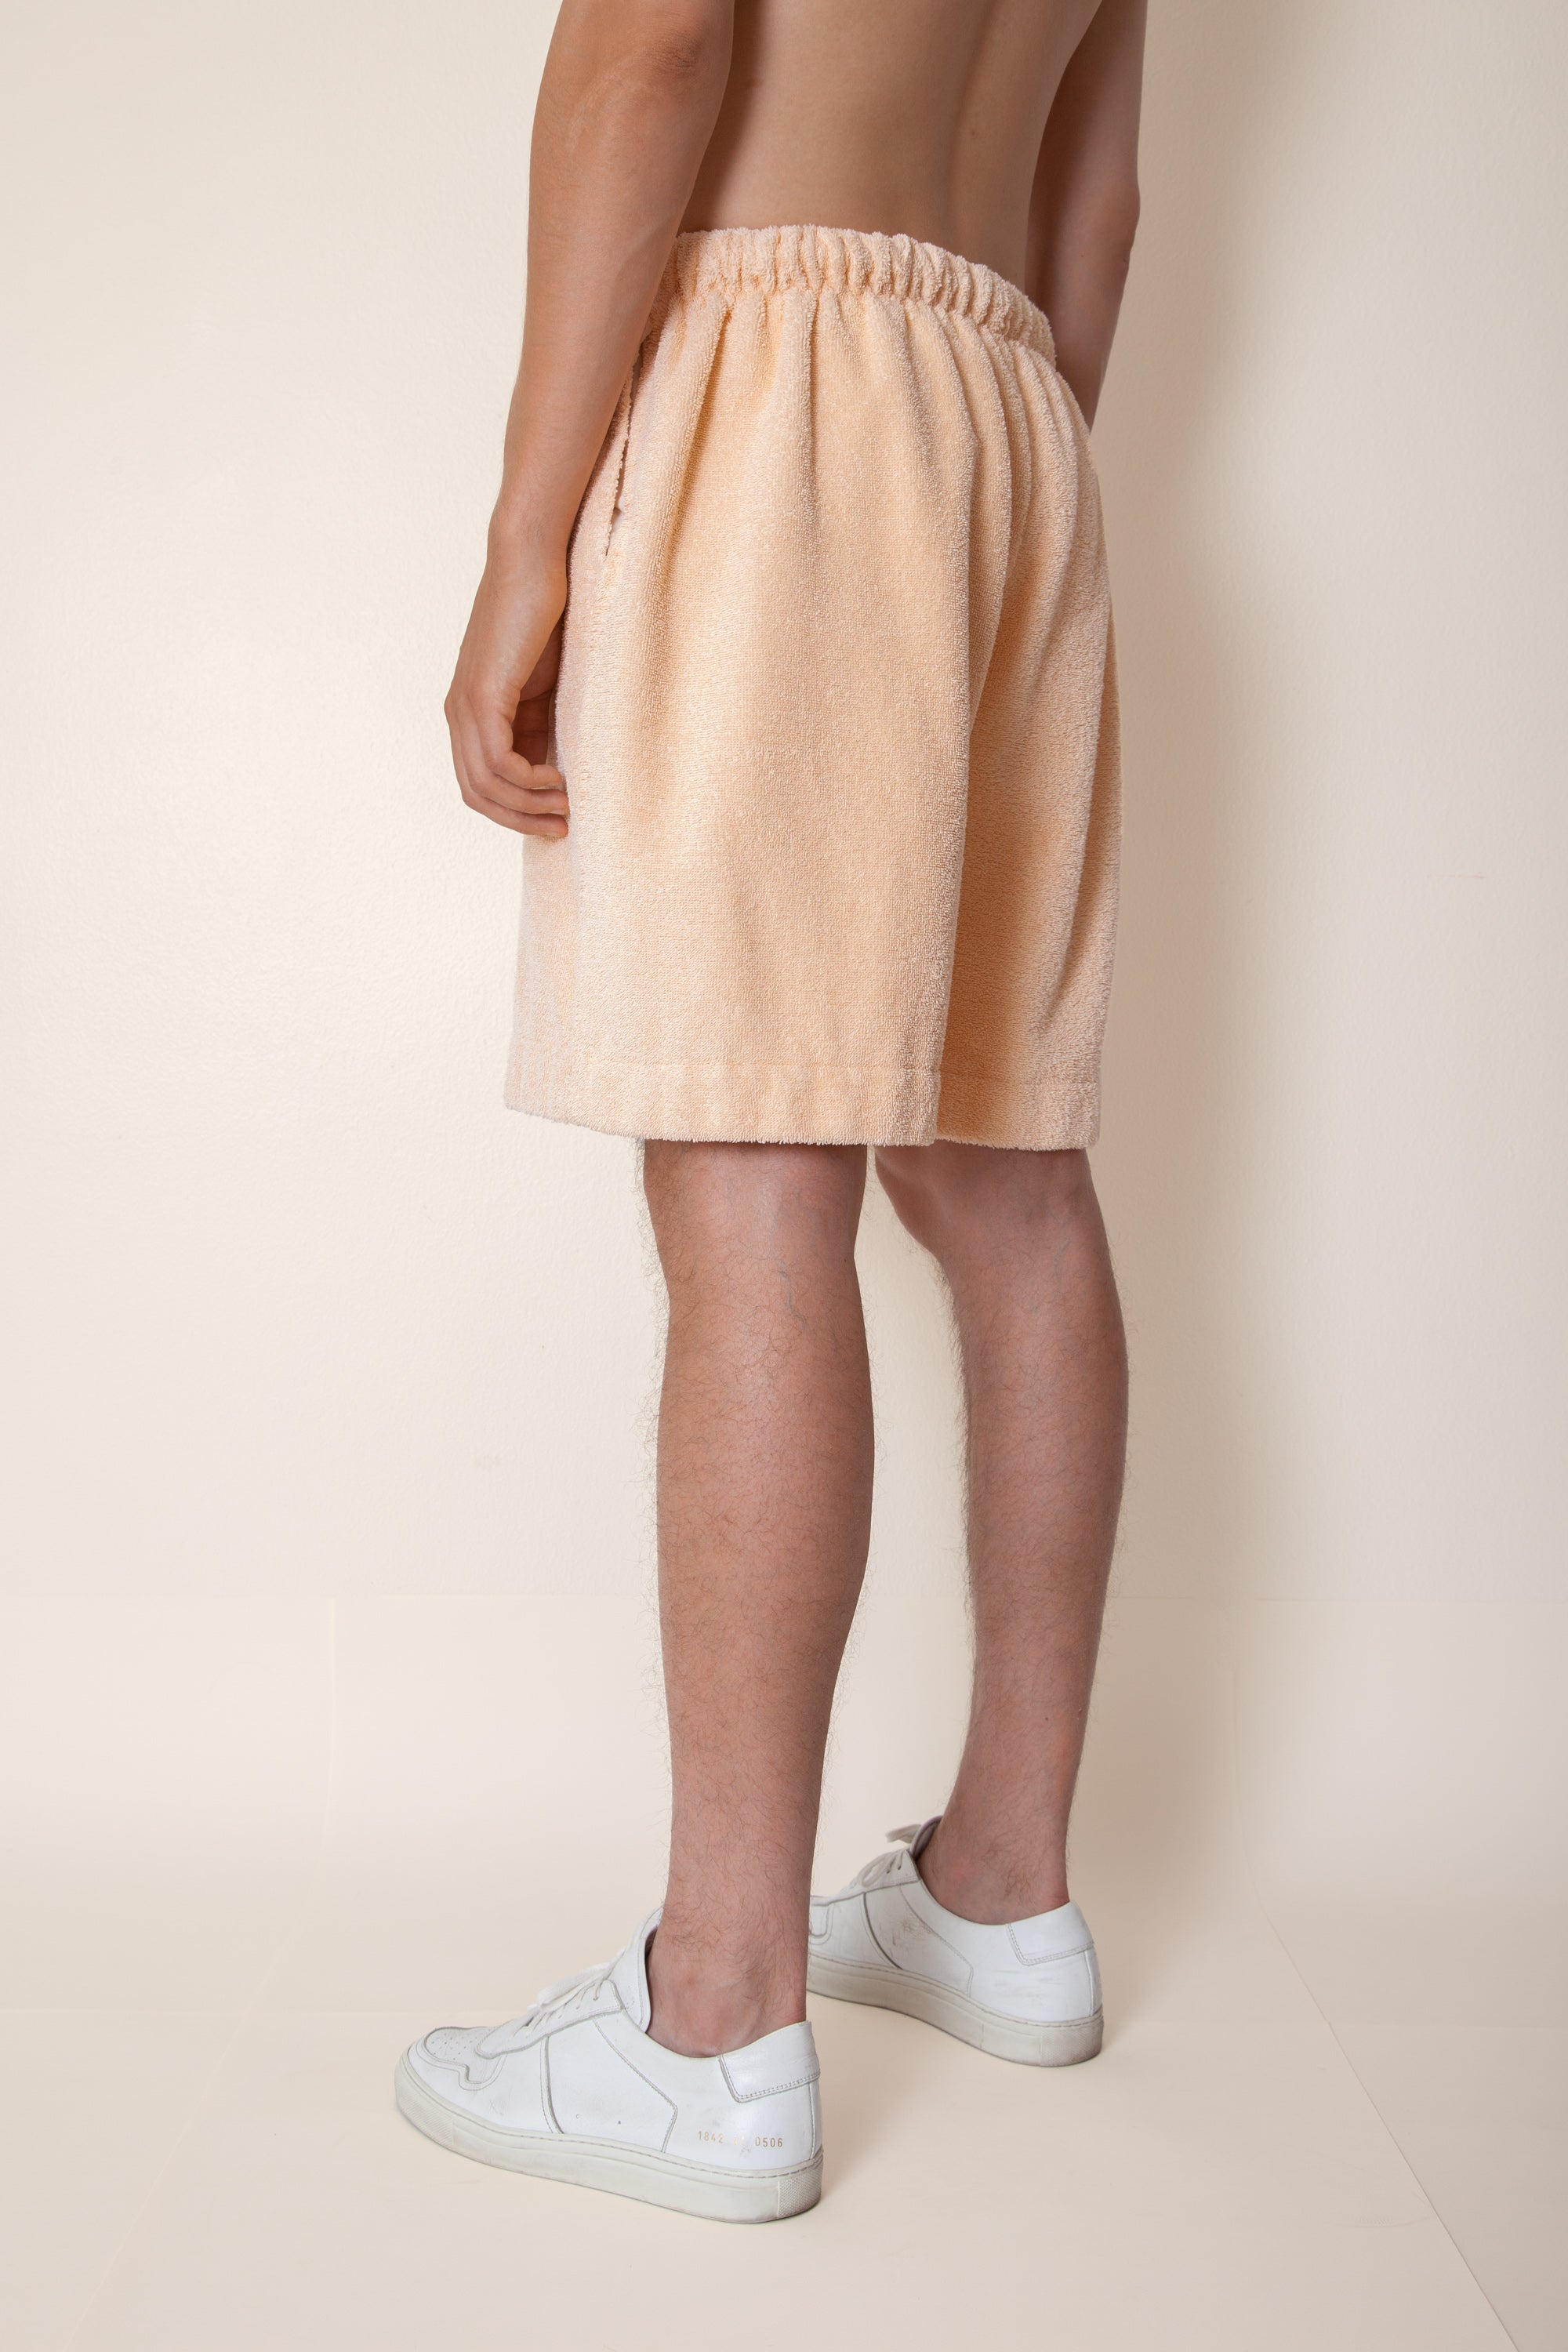 Unisex Terry Basketball Shorts in Peach